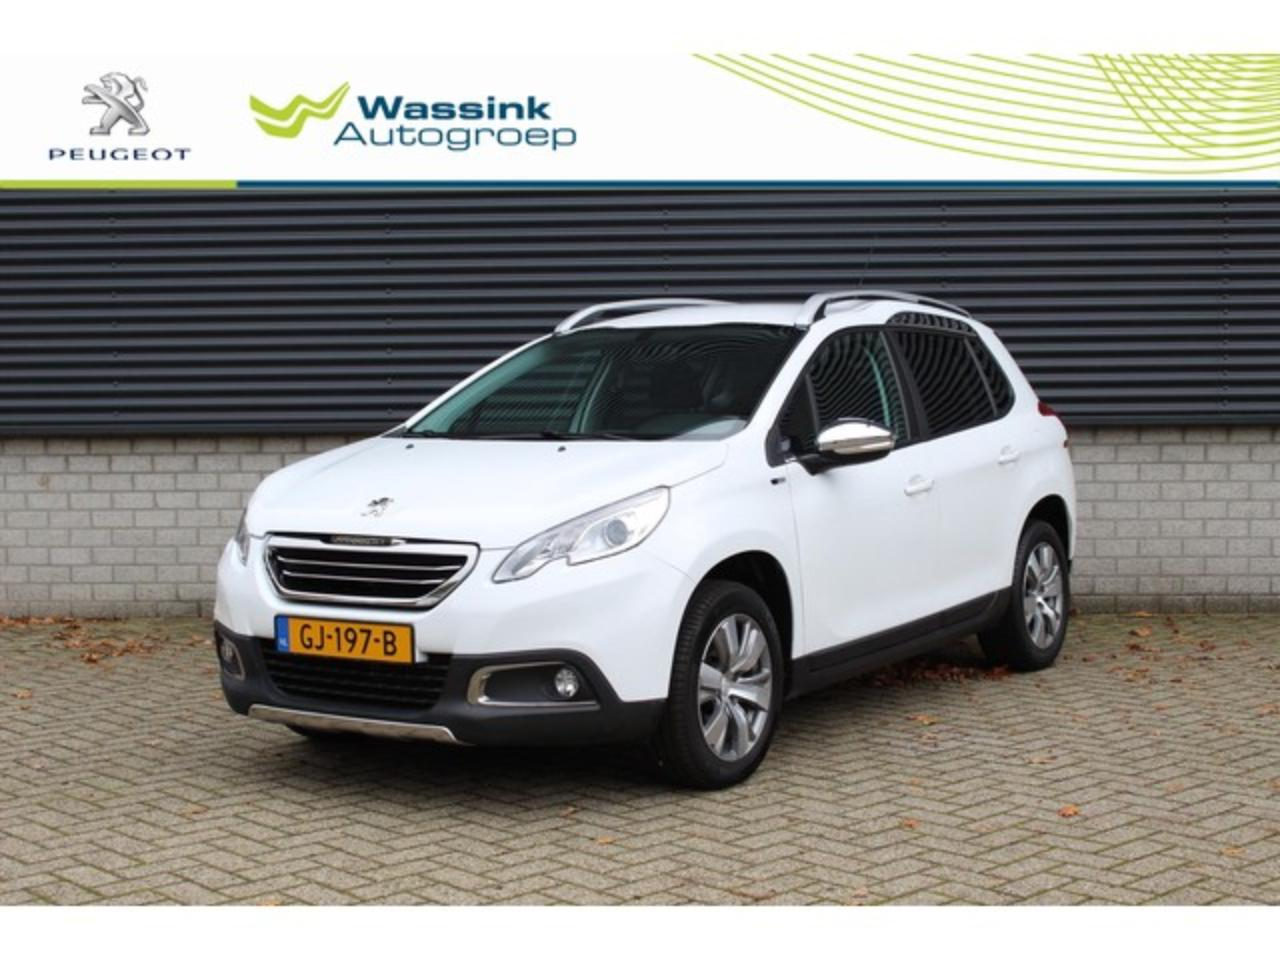 Peugeot 2008 STYLE AUTOMAAT CLIMATE NAVI HOGE INSTAP